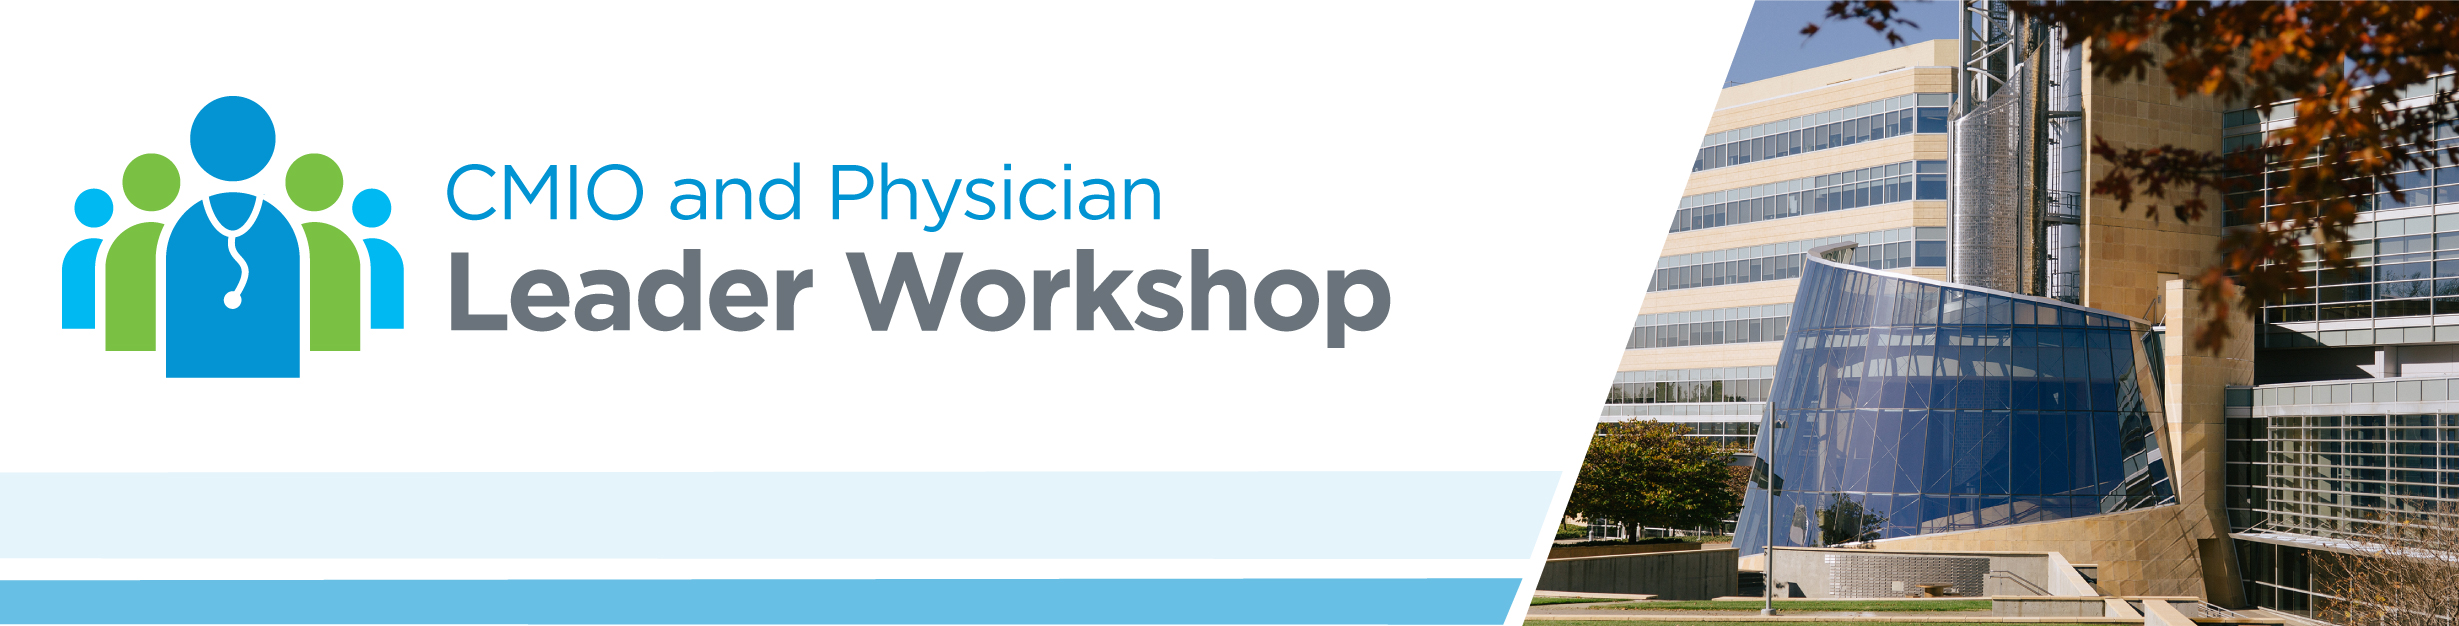 CMIO & Physician Leader Workshop 2018 - Winter